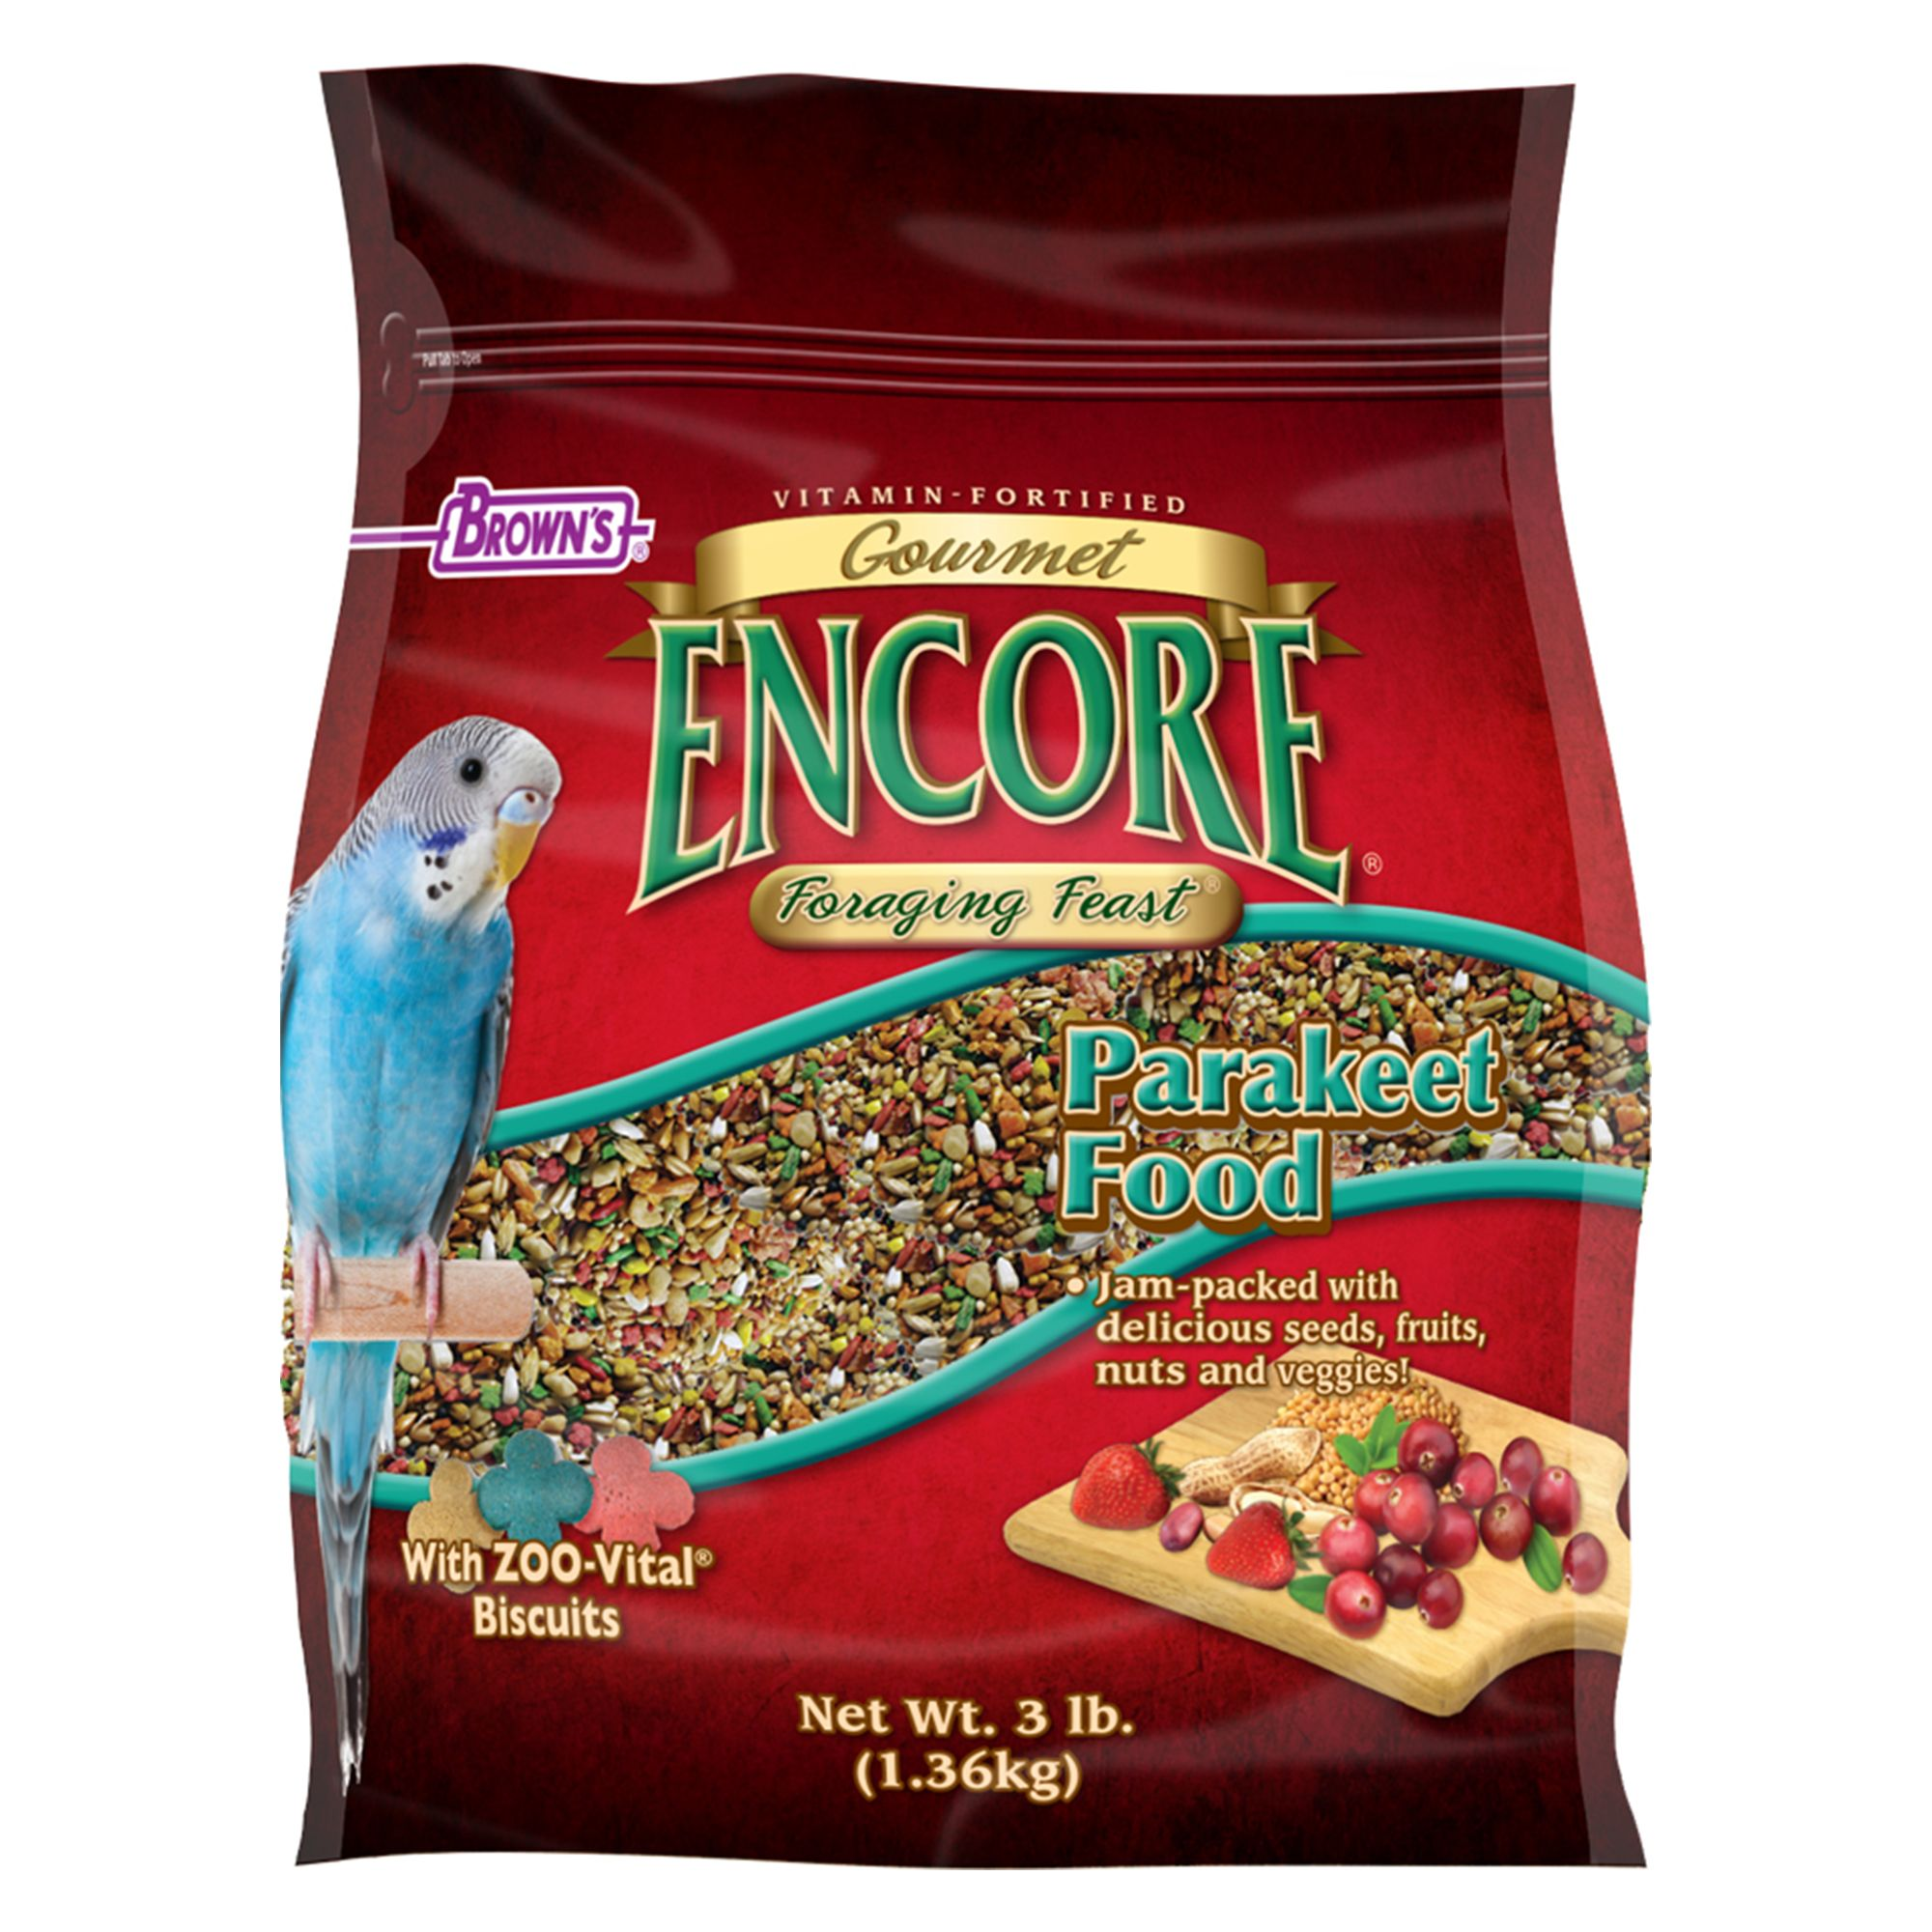 Brown's Encore Foraging Feast Parakeets Food size: 3 Lb, FM Browns 5271525